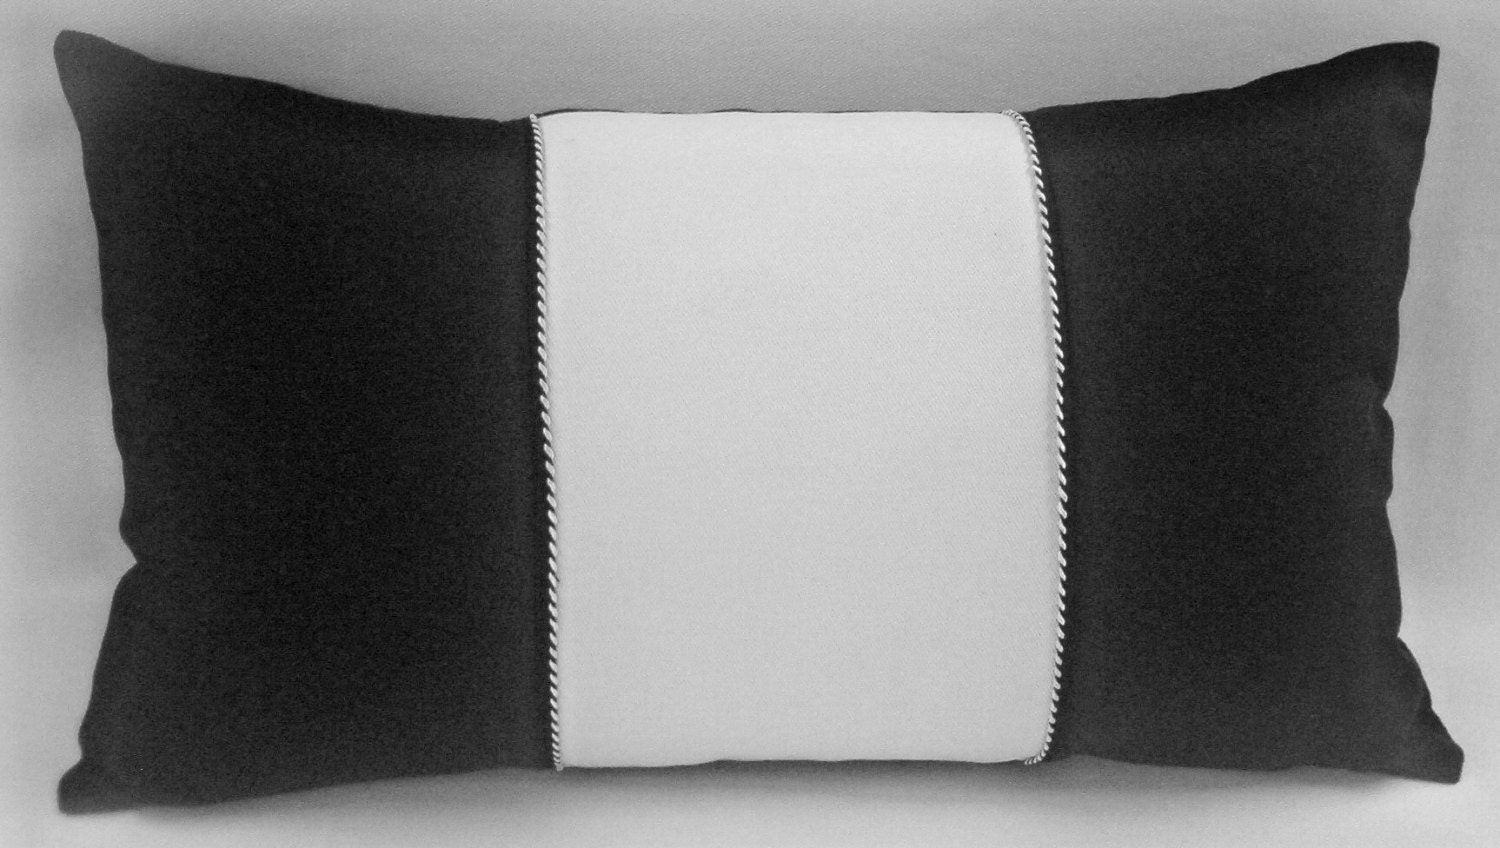 lumbar accent pillow 100 linen black and white. Black Bedroom Furniture Sets. Home Design Ideas